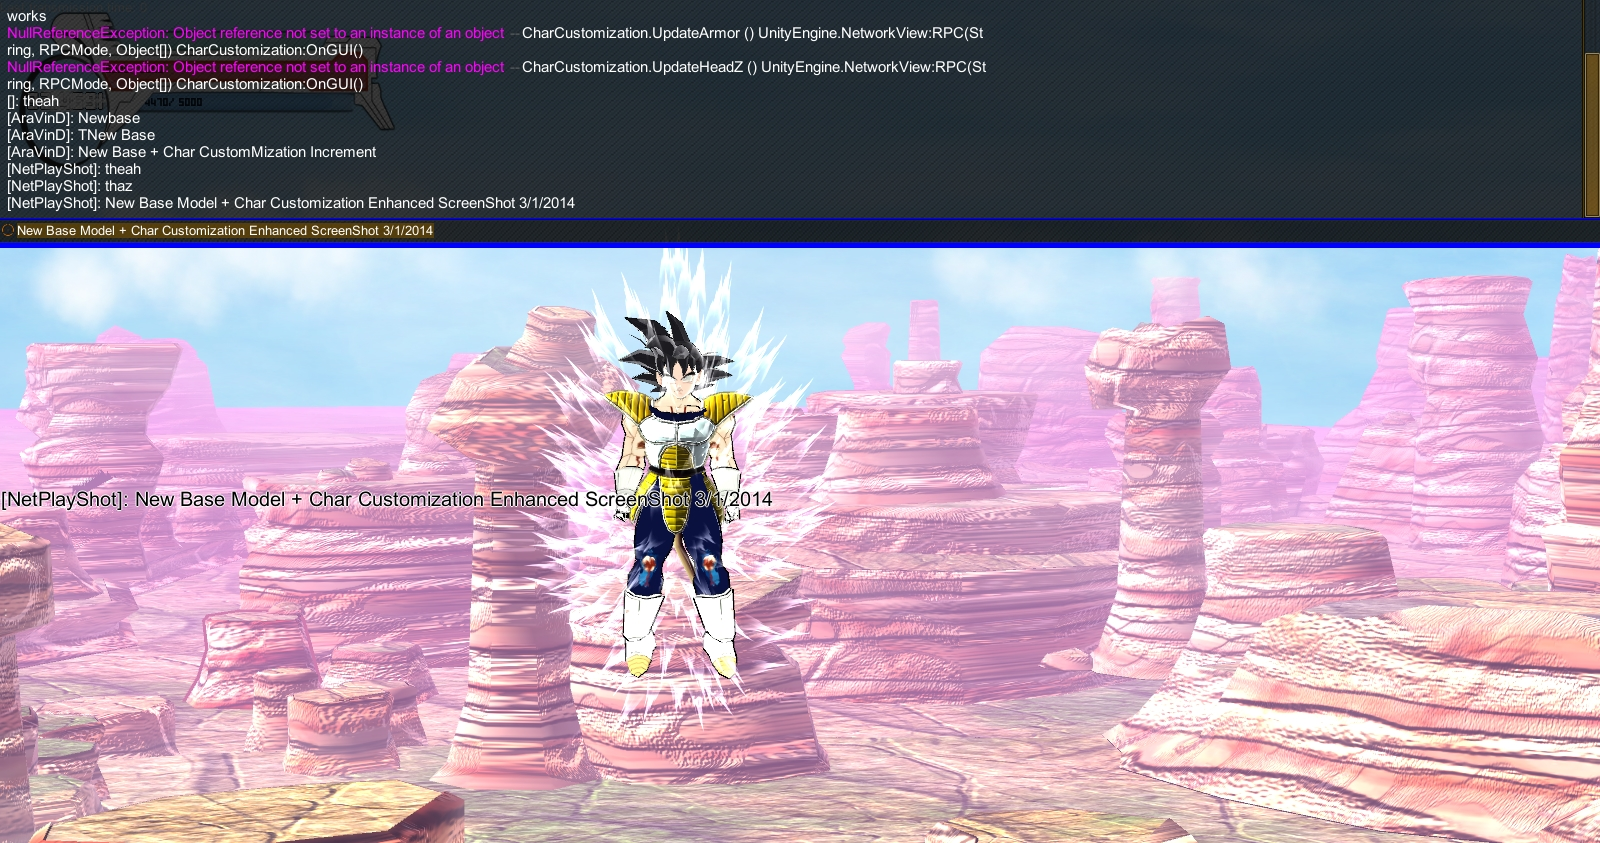 Combo Update: Dev Console and Char Customization image - Z